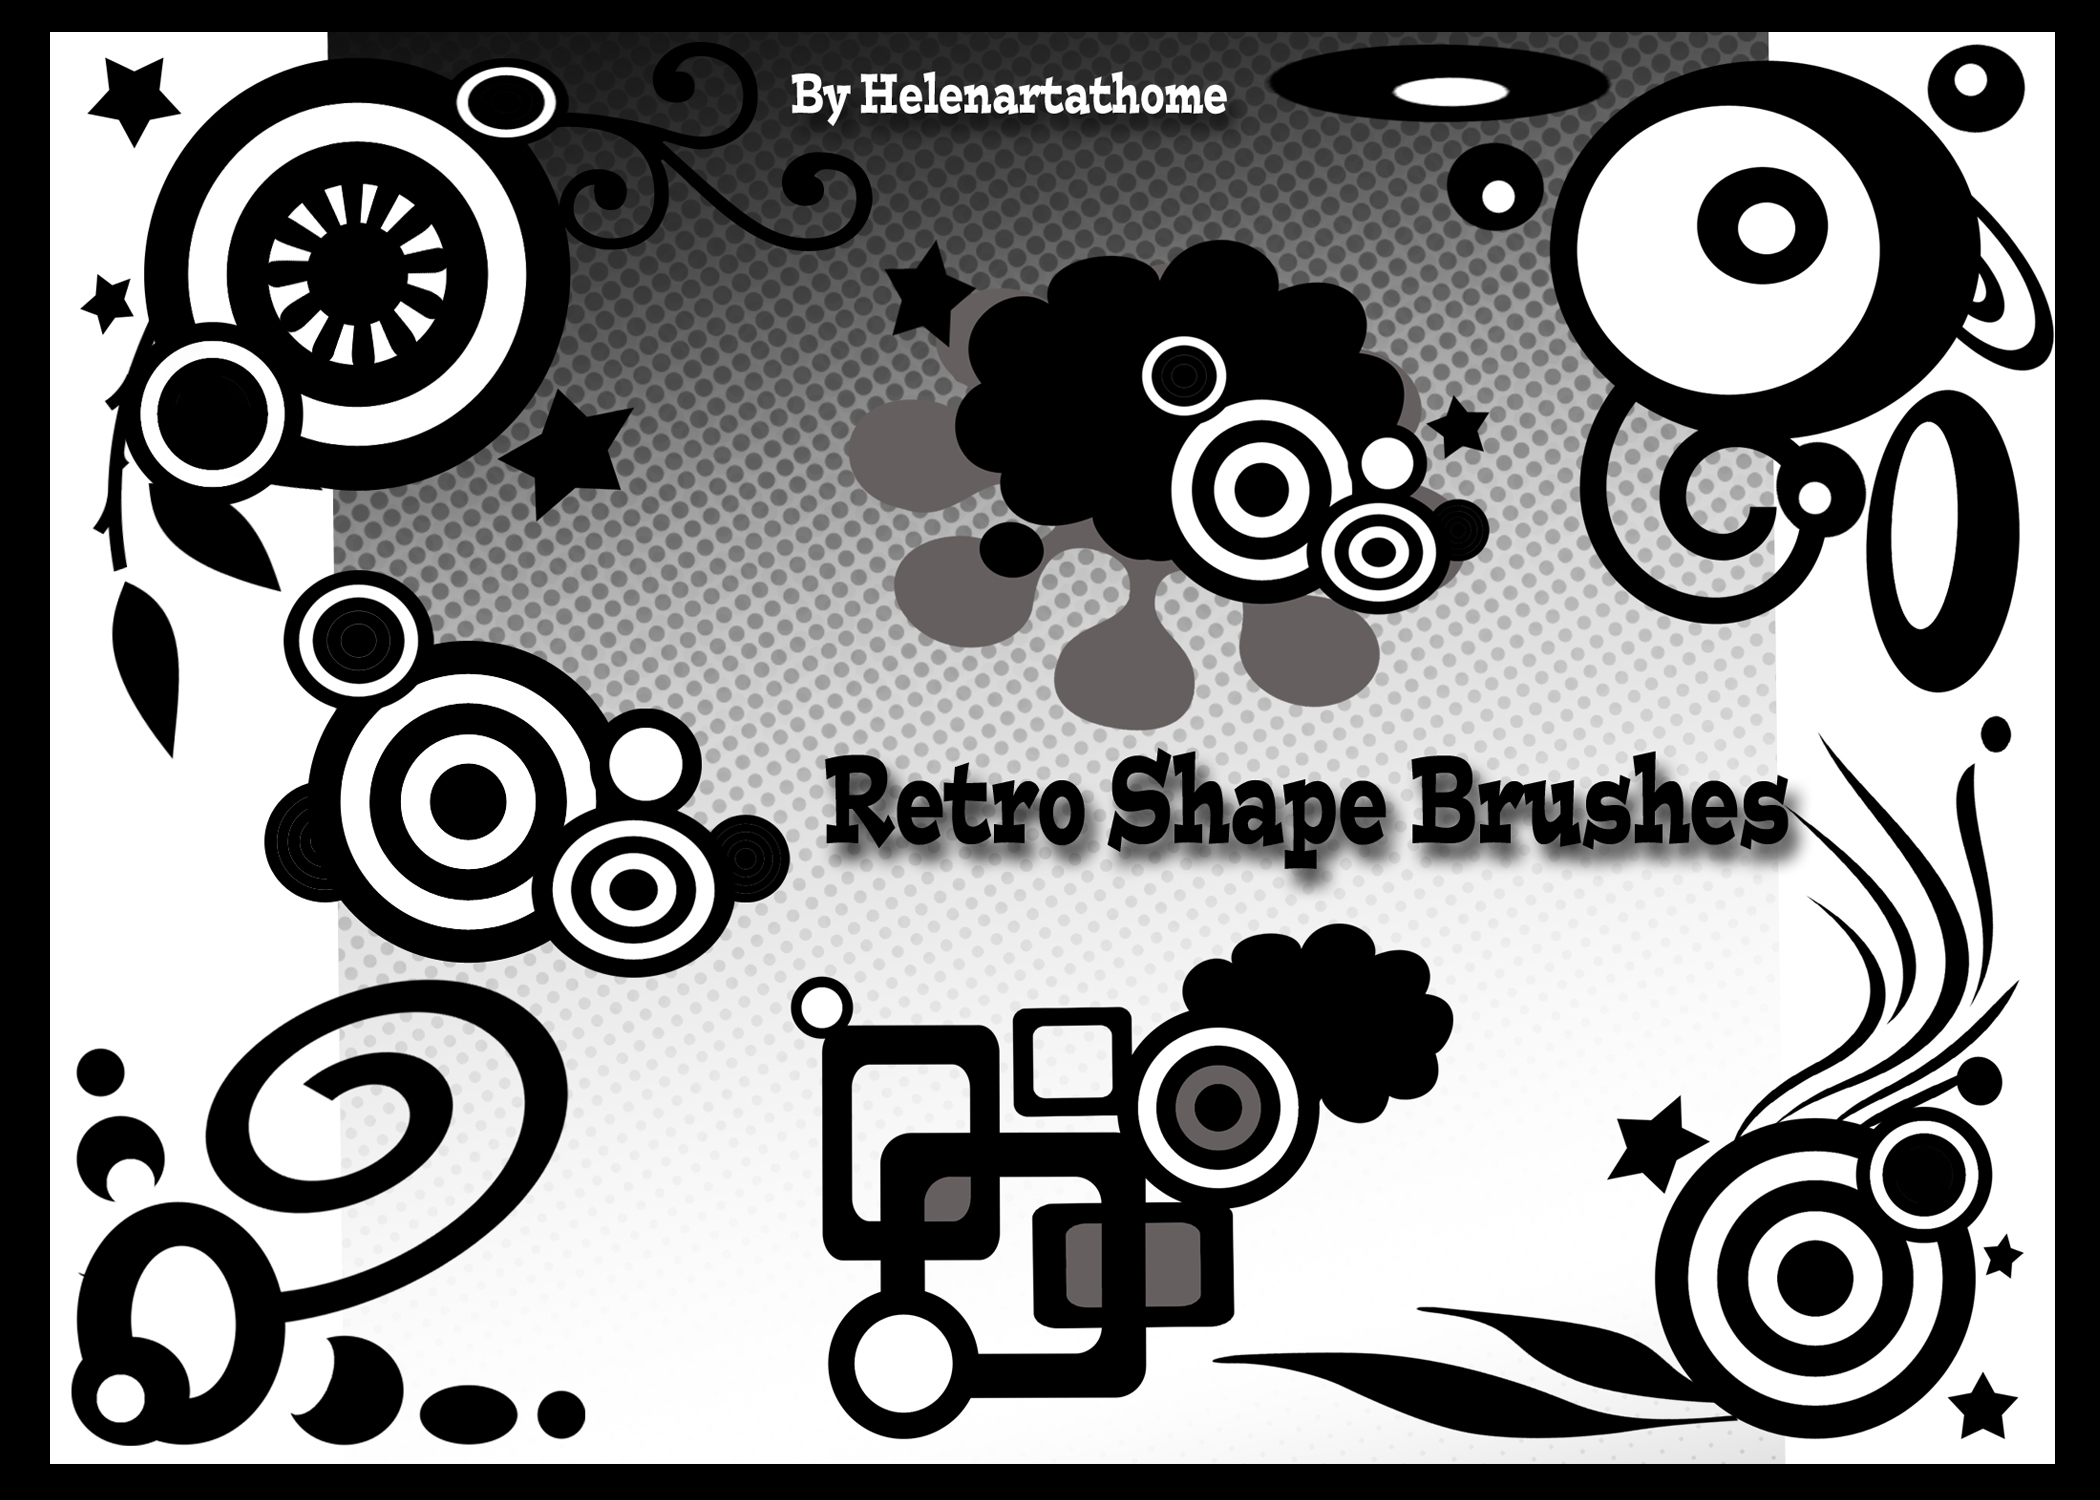 Retro Shape Brushes